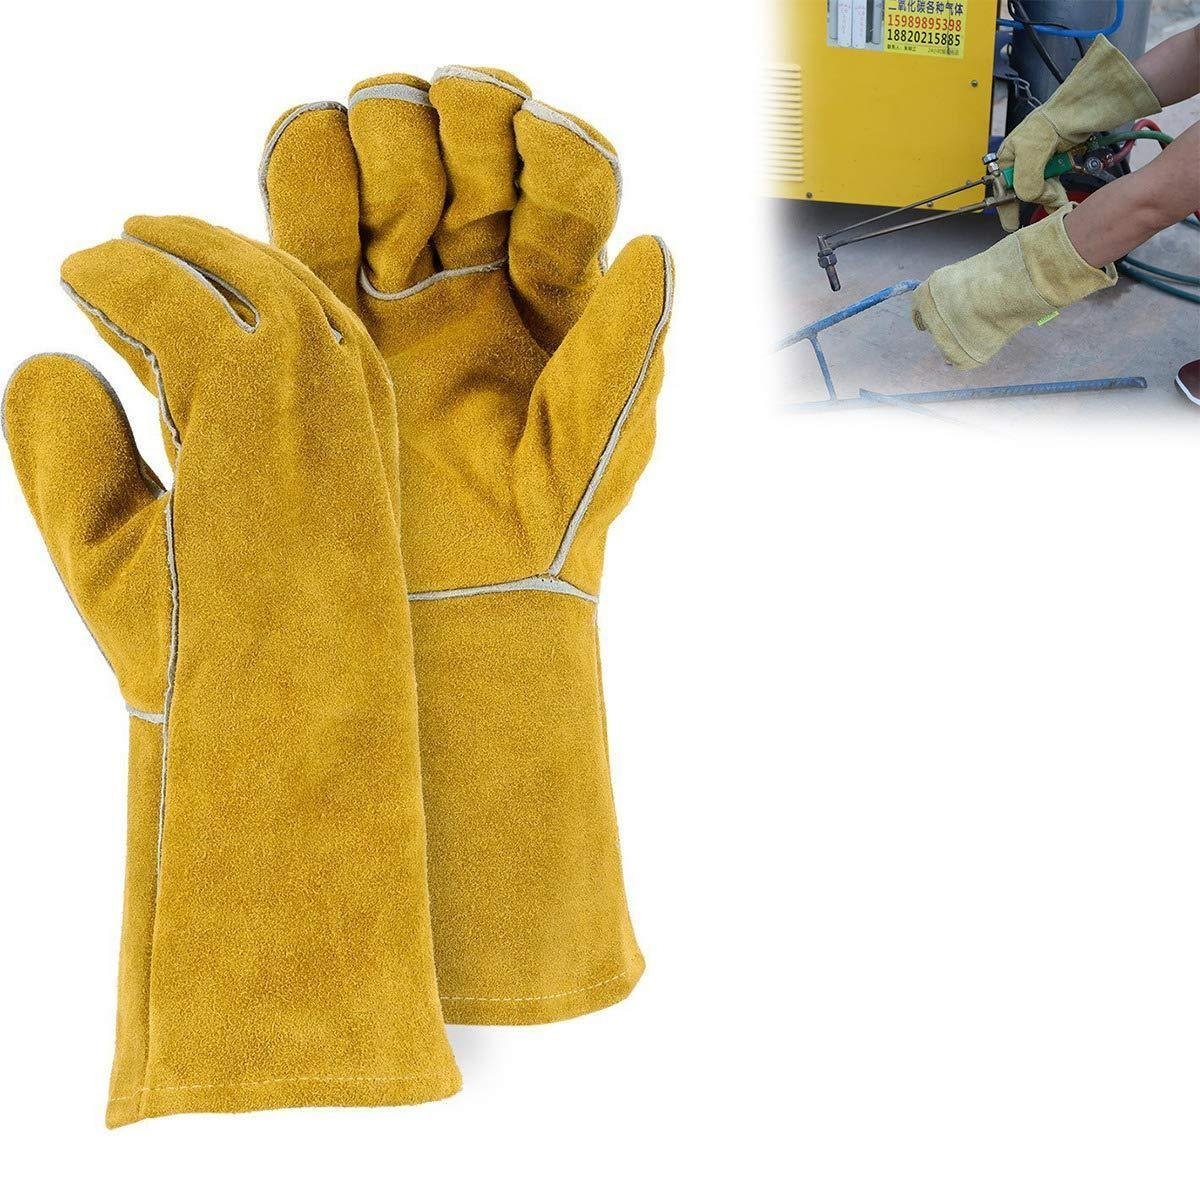 Protective Durable Heat Resistant Welding Gloves